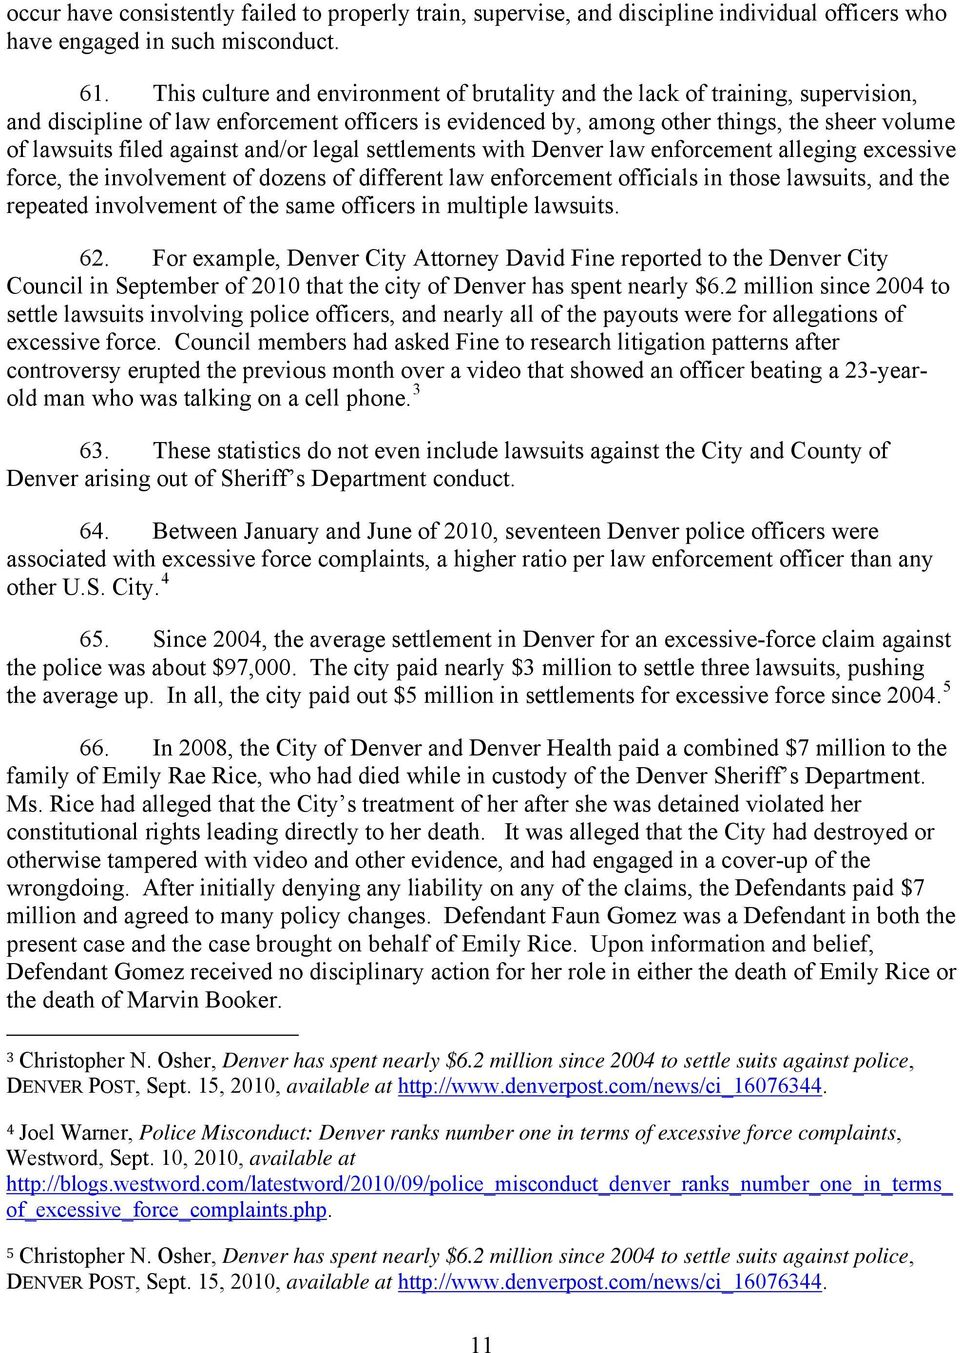 against and/or legal settlements with Denver law enforcement alleging excessive force, the involvement of dozens of different law enforcement officials in those lawsuits, and the repeated involvement